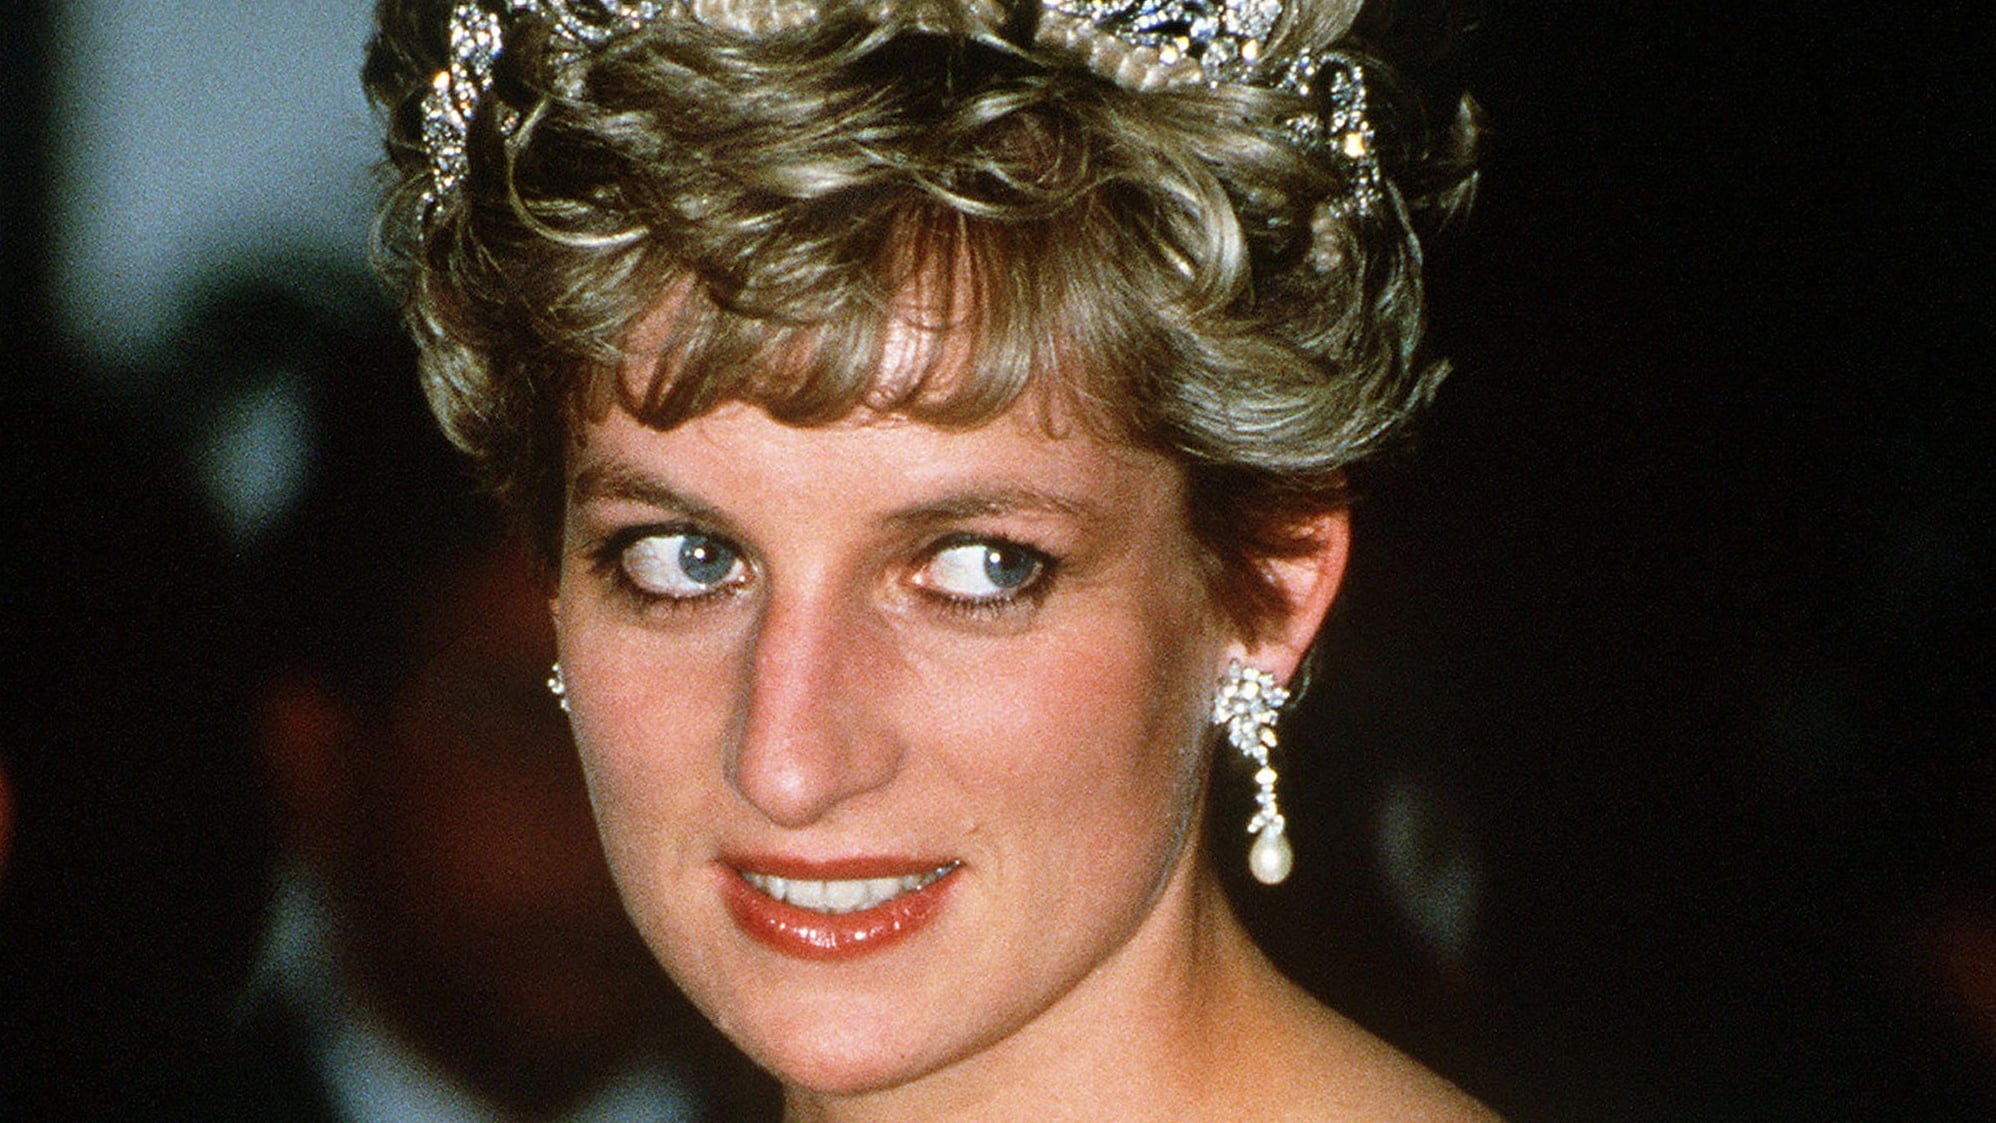 life and death of princess diana As the anniversary of princess diana's death approaches, british broadcaster channel 4 is preparing to air a tv documentary about the personal life of the late princess that includes material some of her family and friends say should remain private.